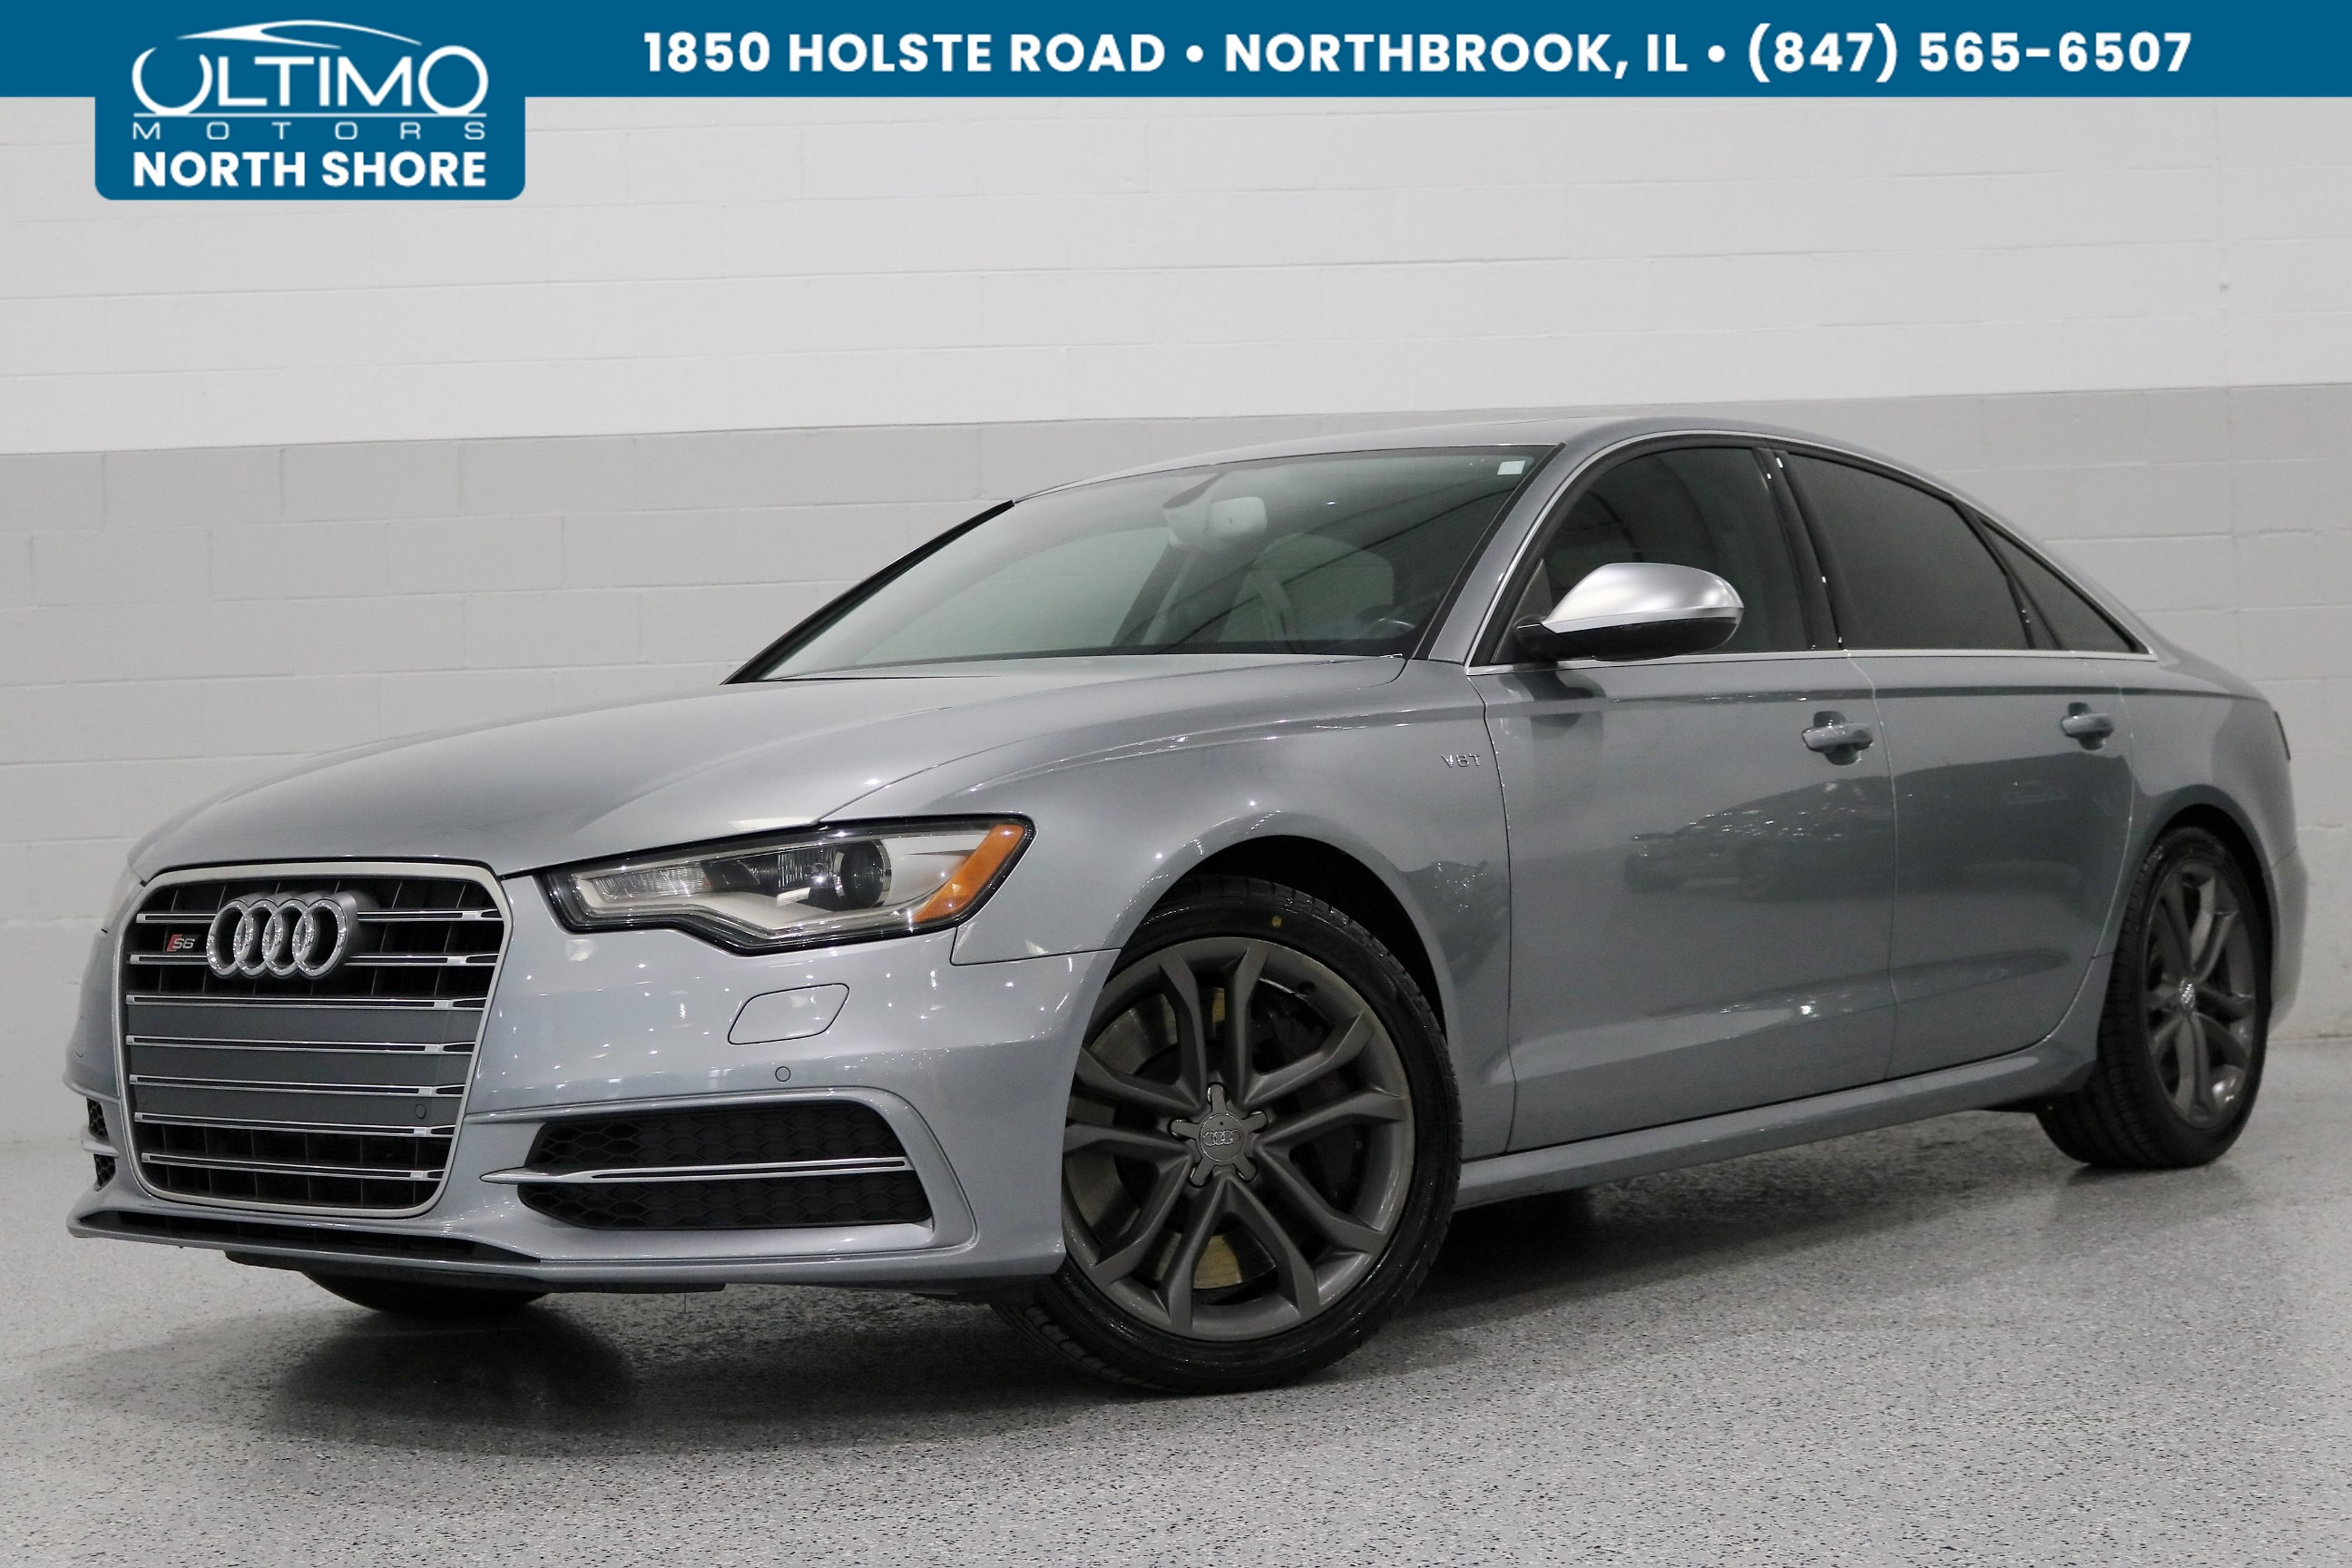 Pre-Owned 2013 Audi S6 Side Assist, Drive Select, S Tronic